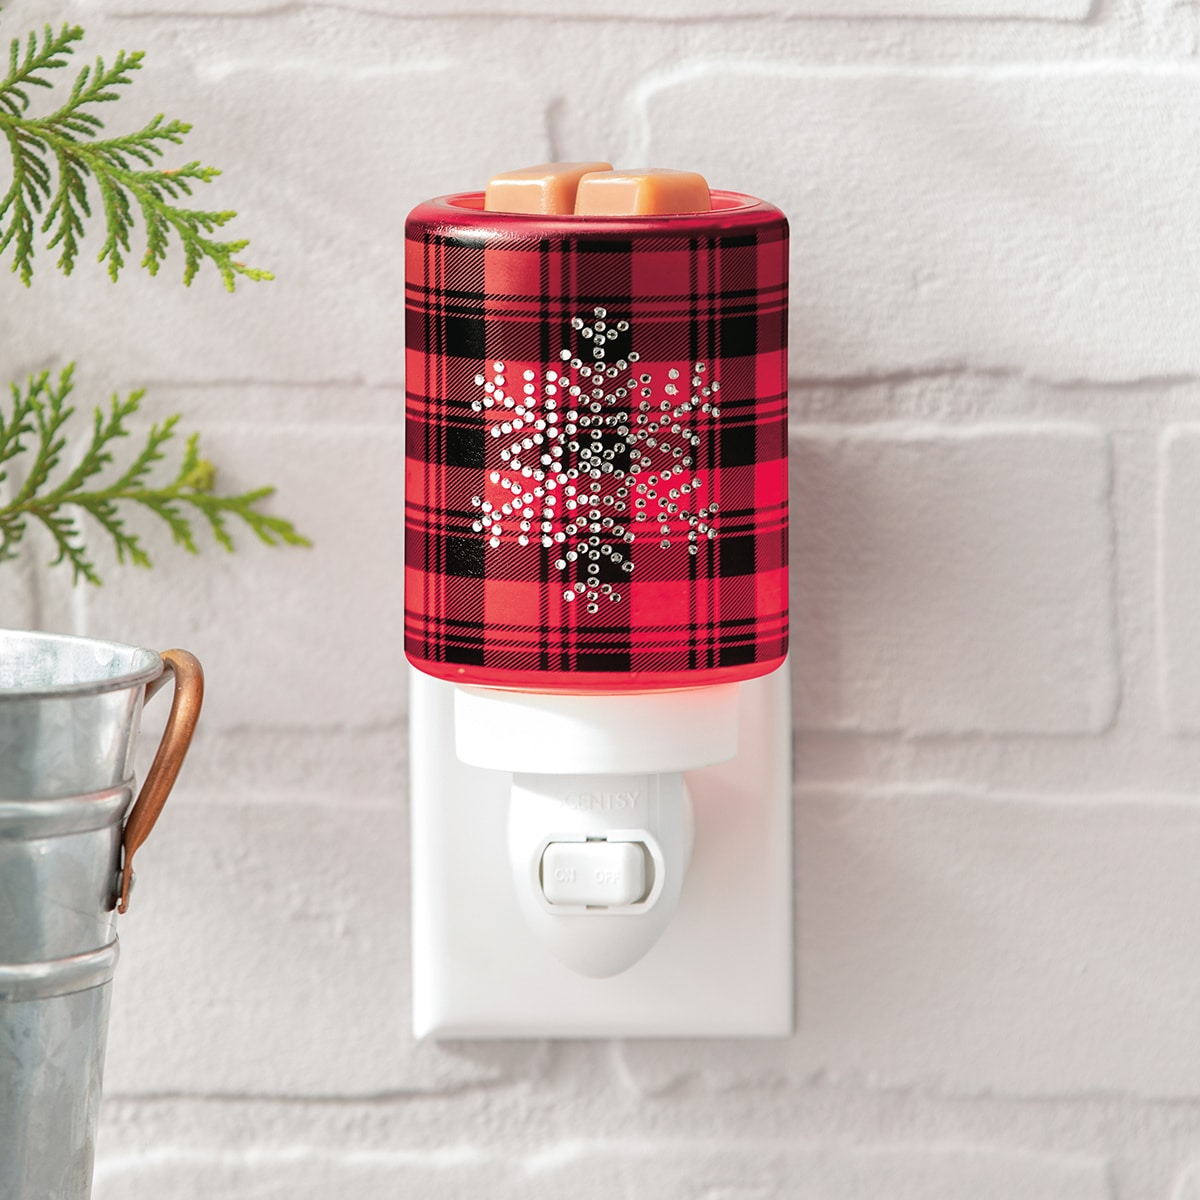 plaid flannel holiday scentsy warmer